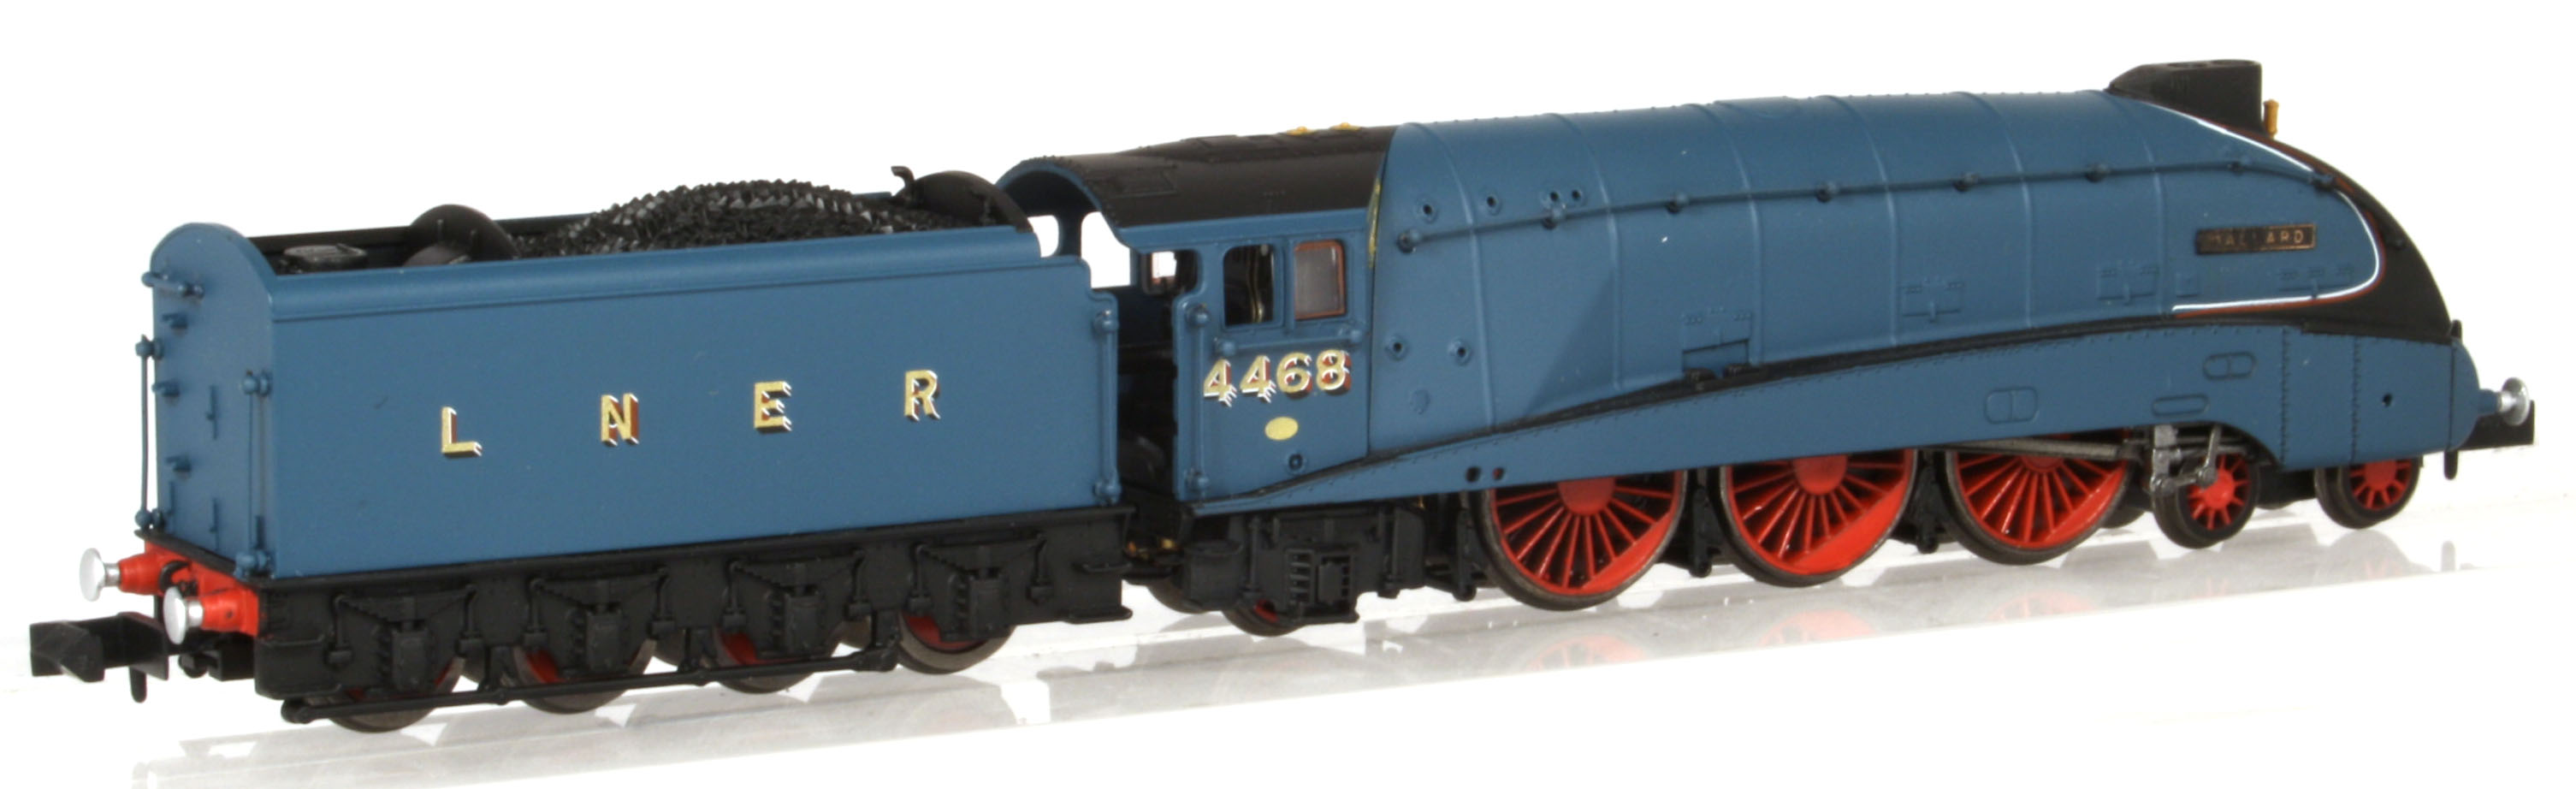 "2S-008-008 Dapol A4 Steam Locomotive number 4468 named ""Mallard"" in LNER Garter Blue livery with valances"